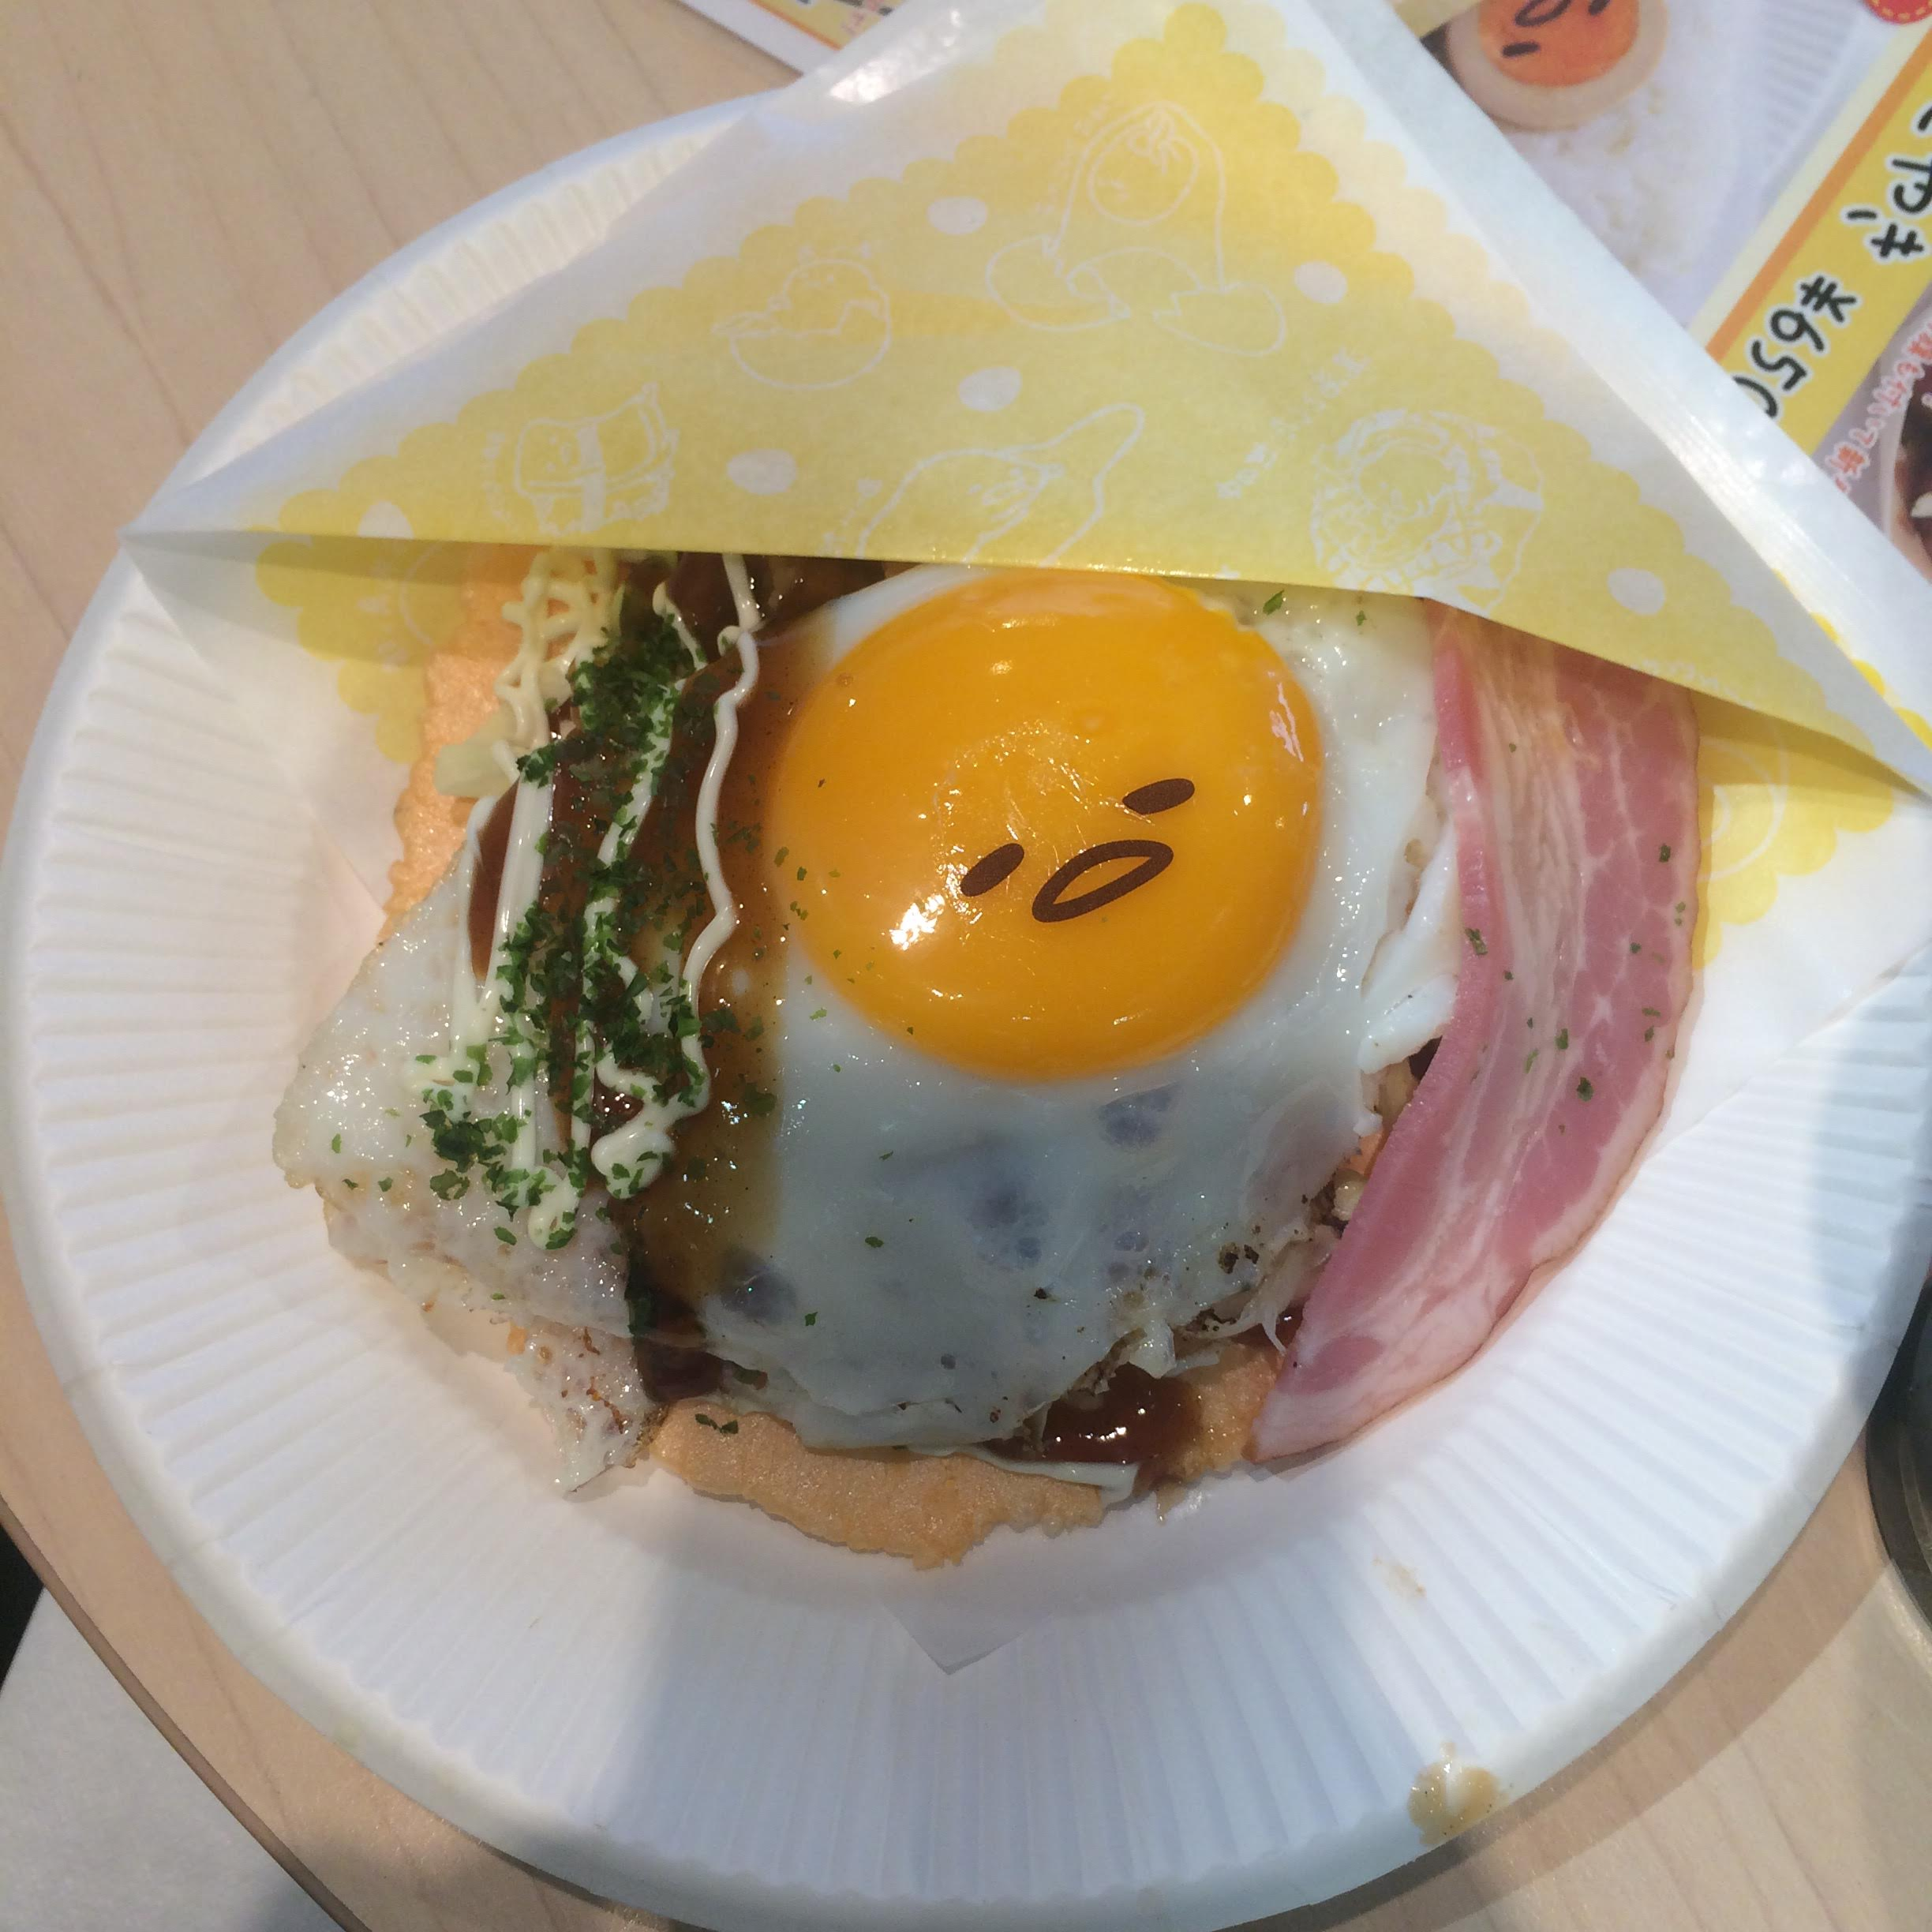 Gudetama: The Lazy Egg That Japan Loves